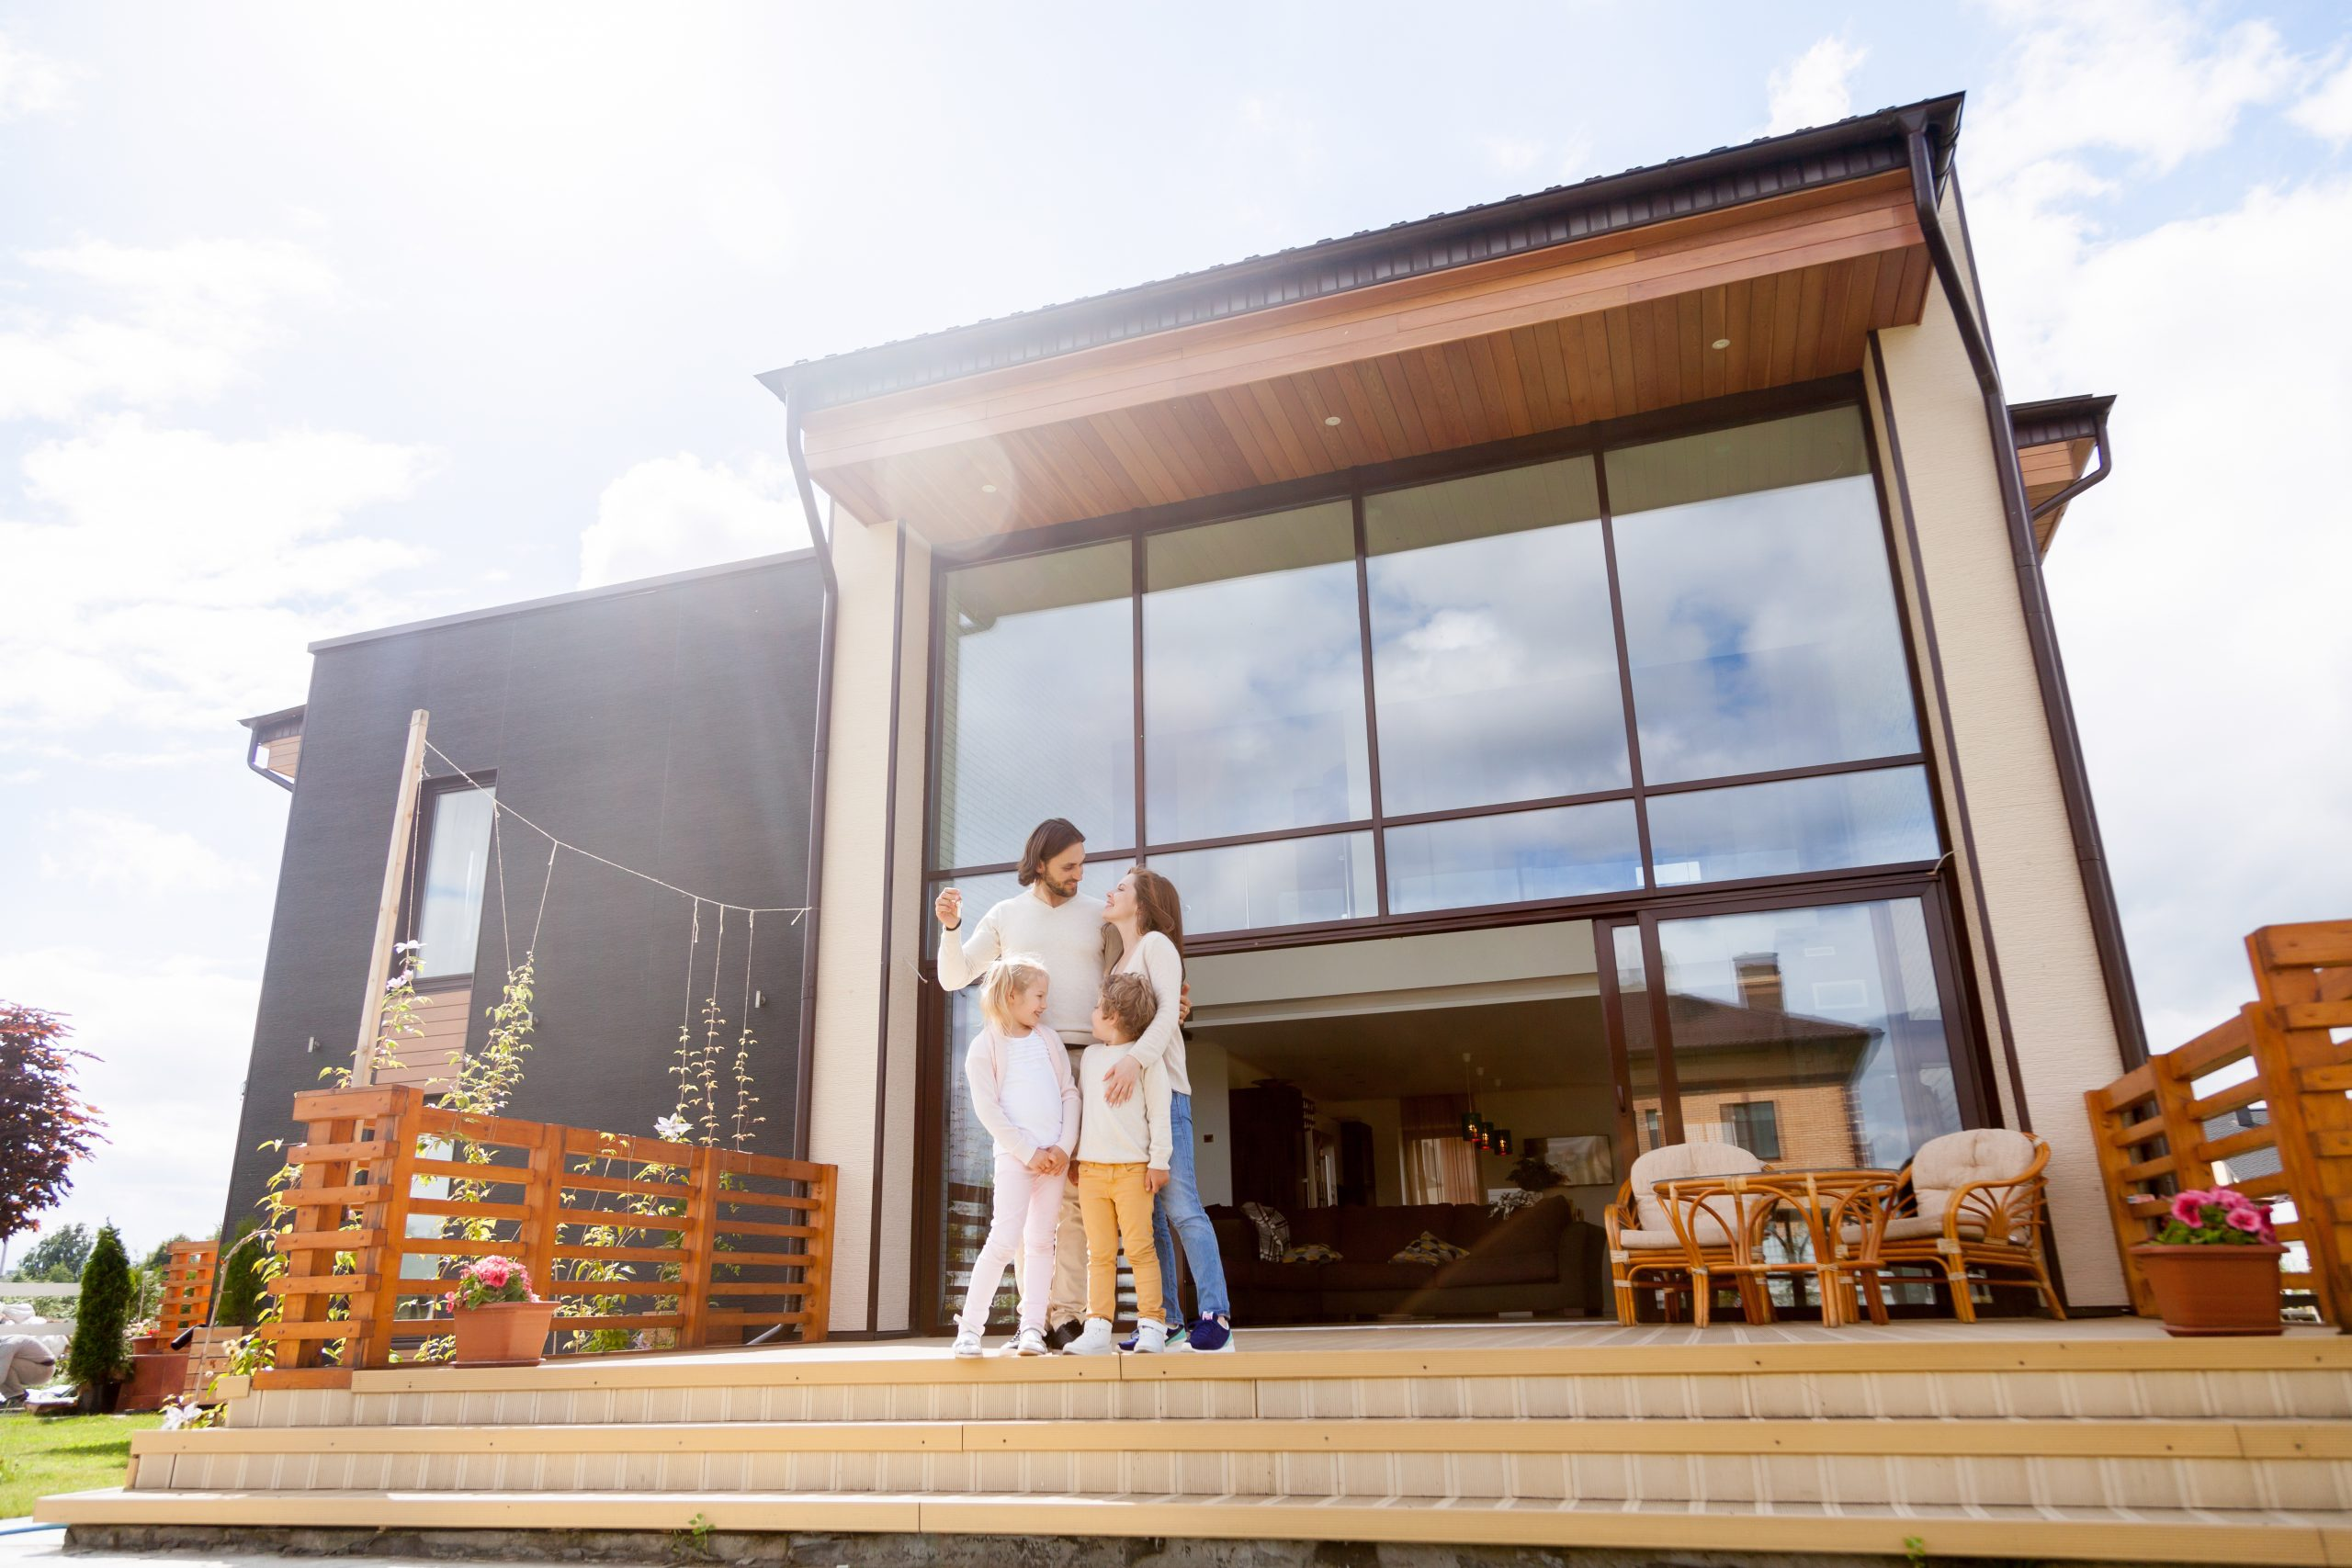 Insurers and builders joining forces to strengthen Australian homes